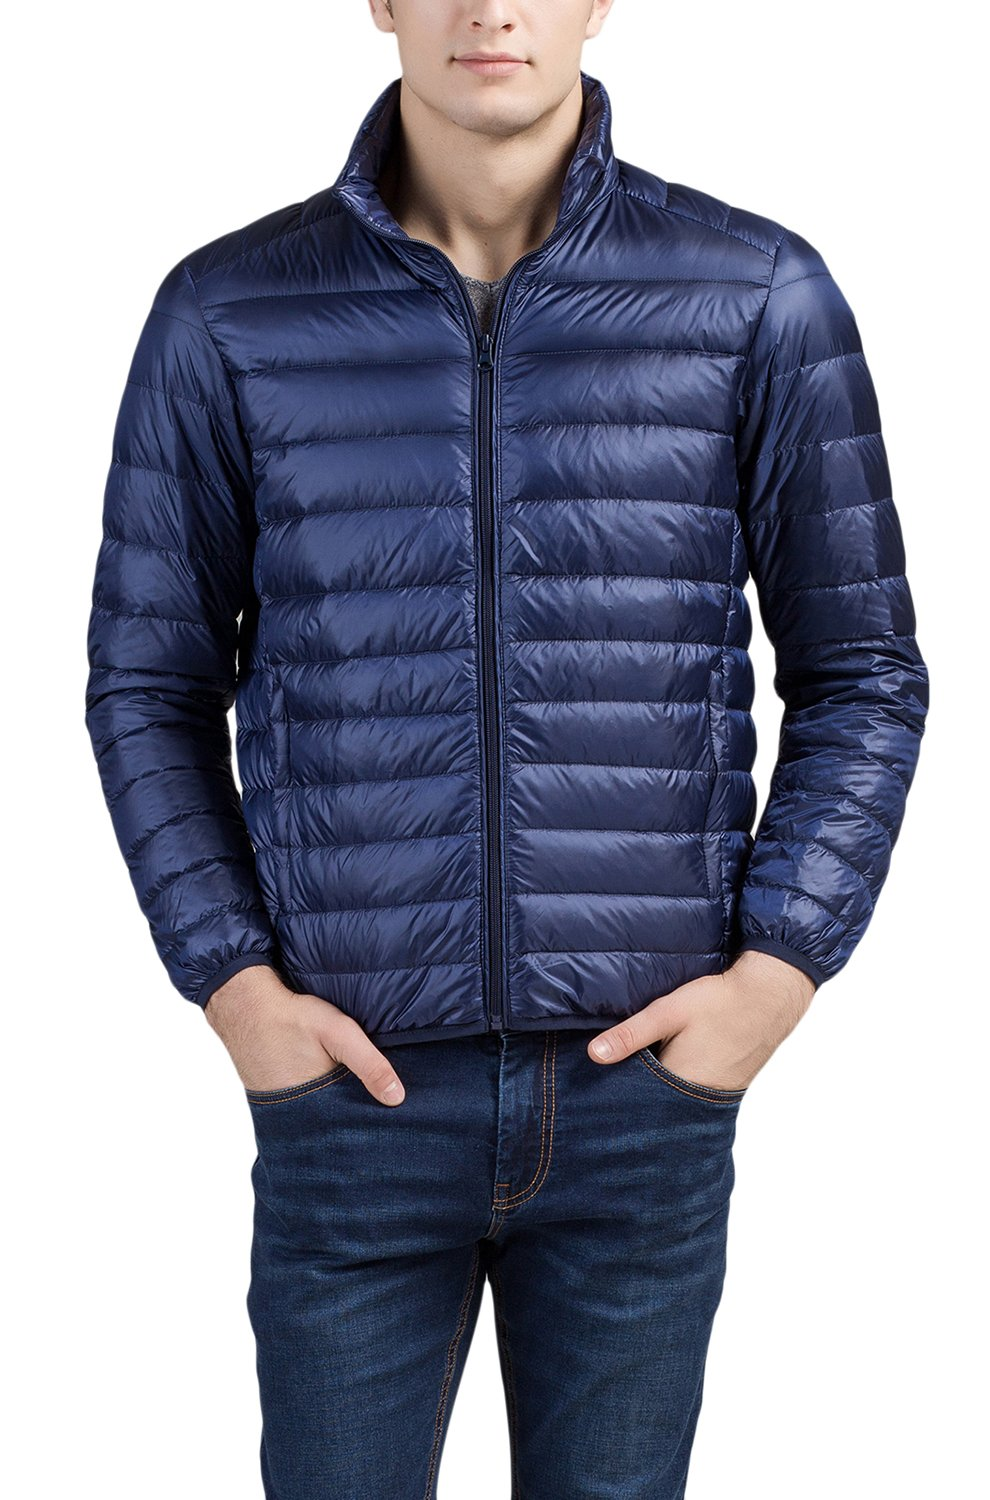 Cheering Men's Packable Down Jacket Weatherproof Winter Coat Navy US Large(Tag 2XL) by Cheering